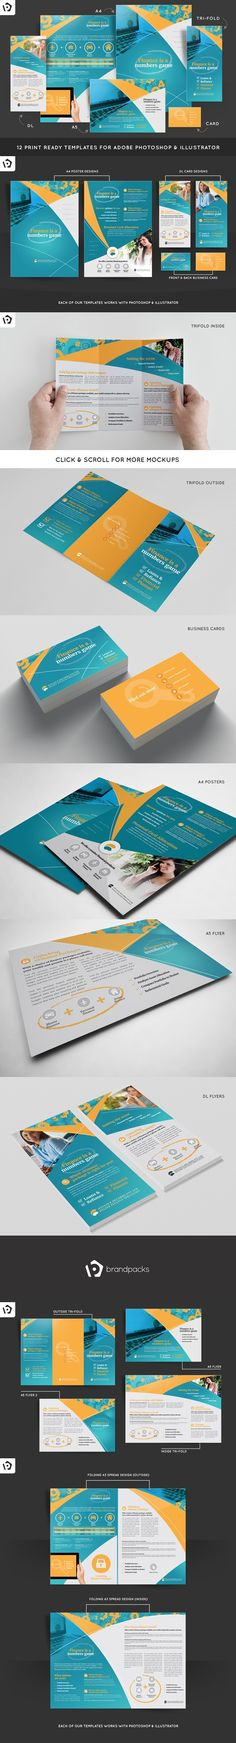 1754 Best Flyer Design Images On Pinterest In 2019 Advertising